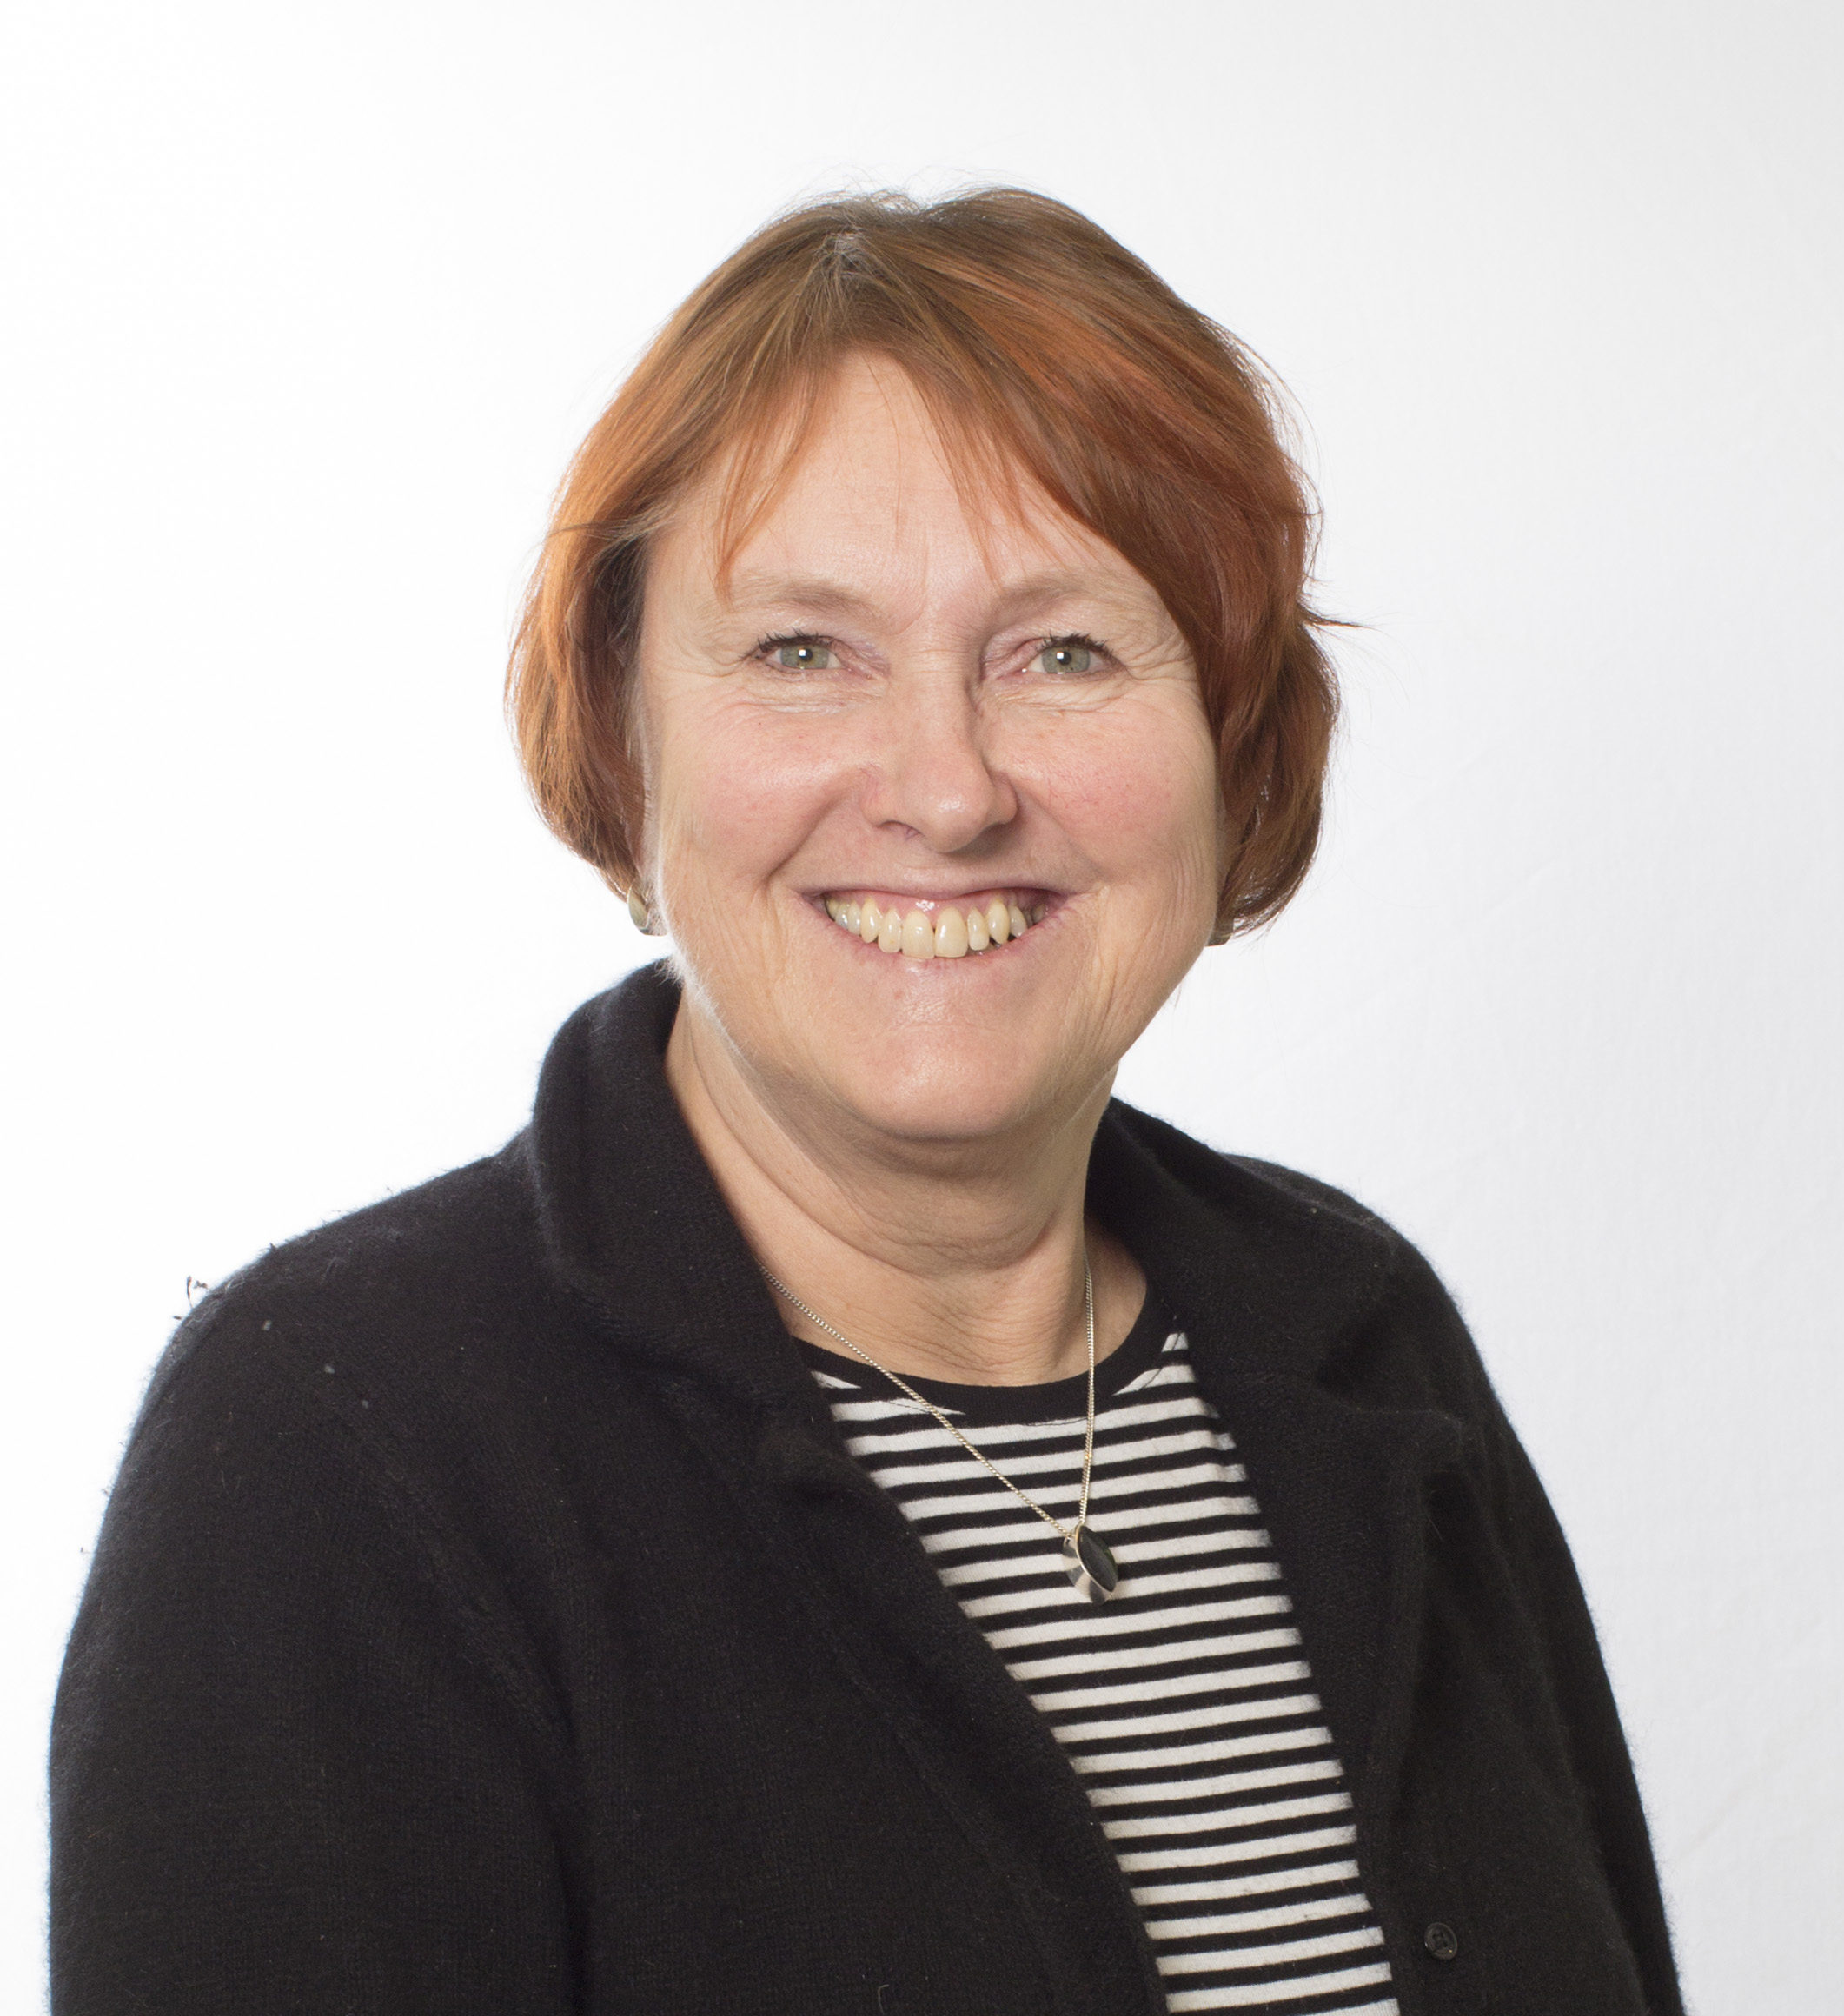 Professor Ann-Christine Syvänen, director of the SNP&SEQ Technology Platform